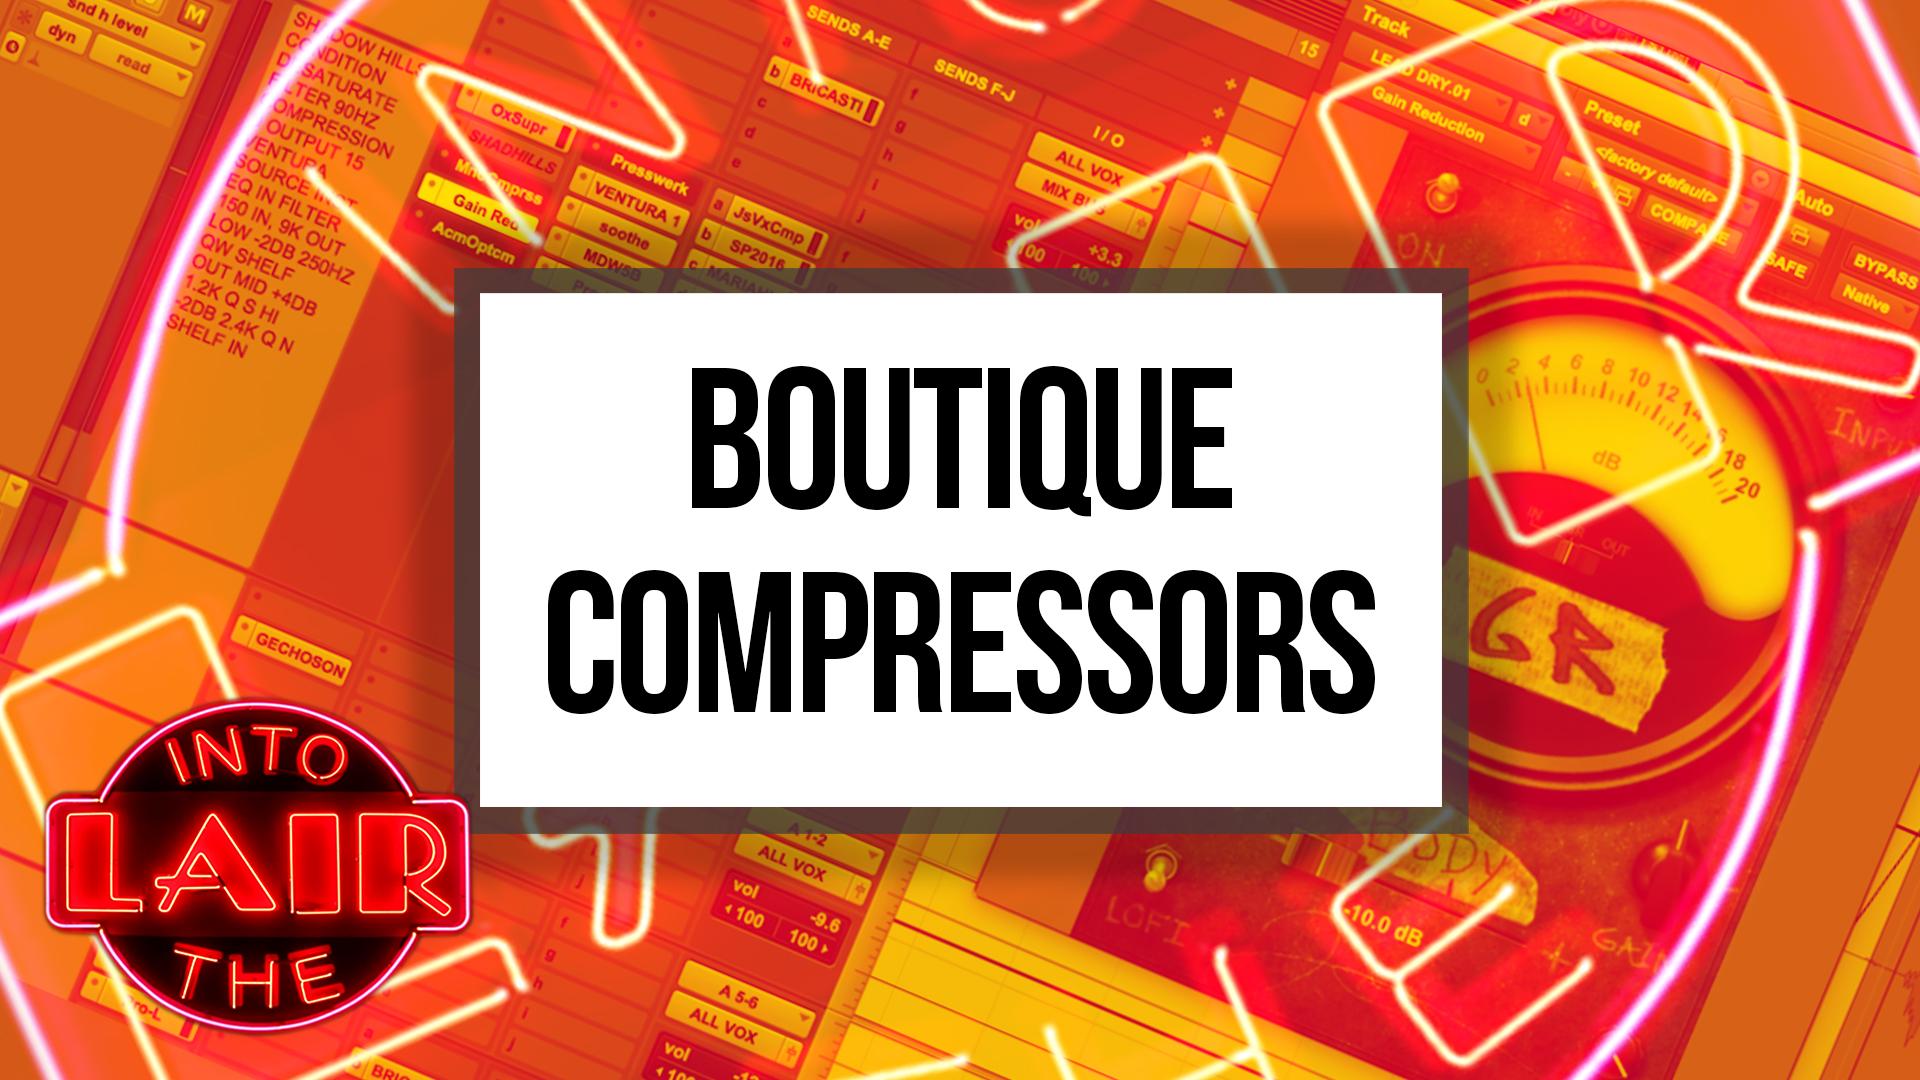 Boutique Compressors